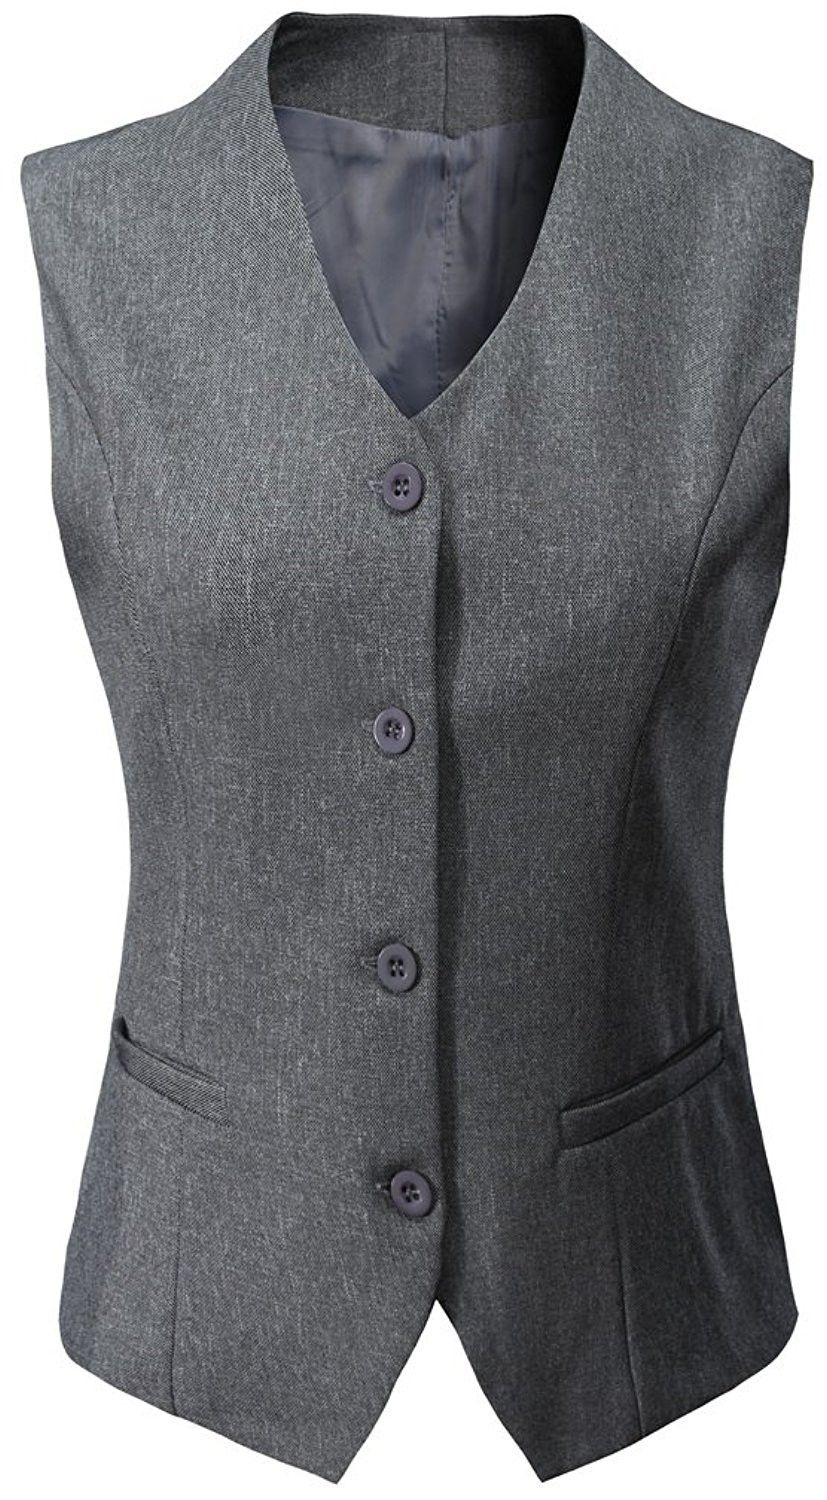 b13286cc327 Women s Formal Regular Fitted Business Dress Suits Button Down Vest ...